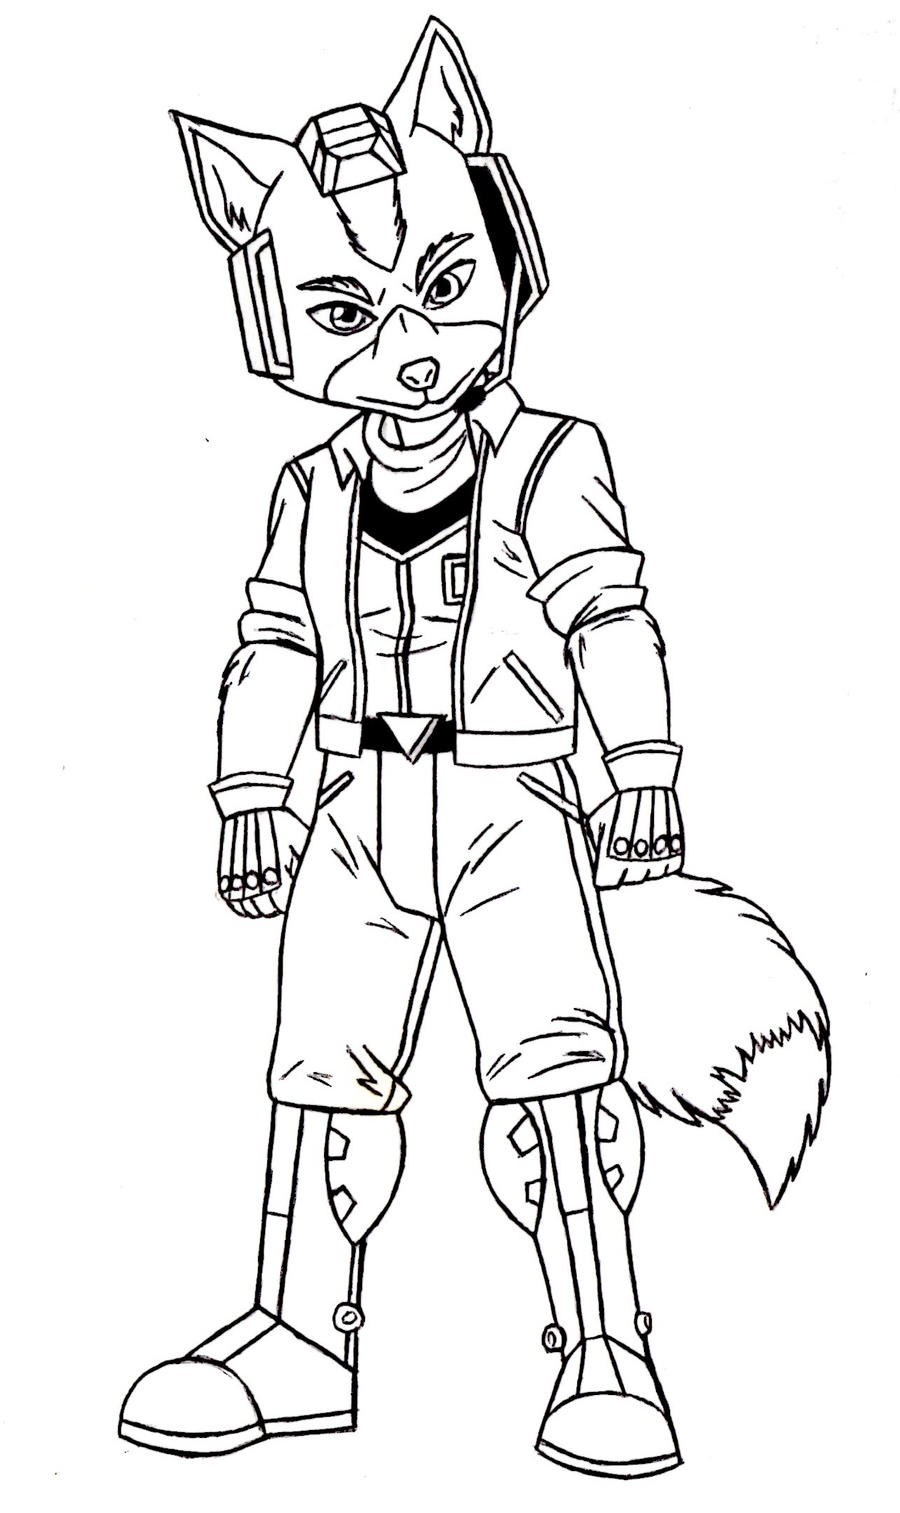 Coloring Pages Star Fox Coloring Pages fox mccloud starfox 64 sketch by acdraw on deviantart acdraw